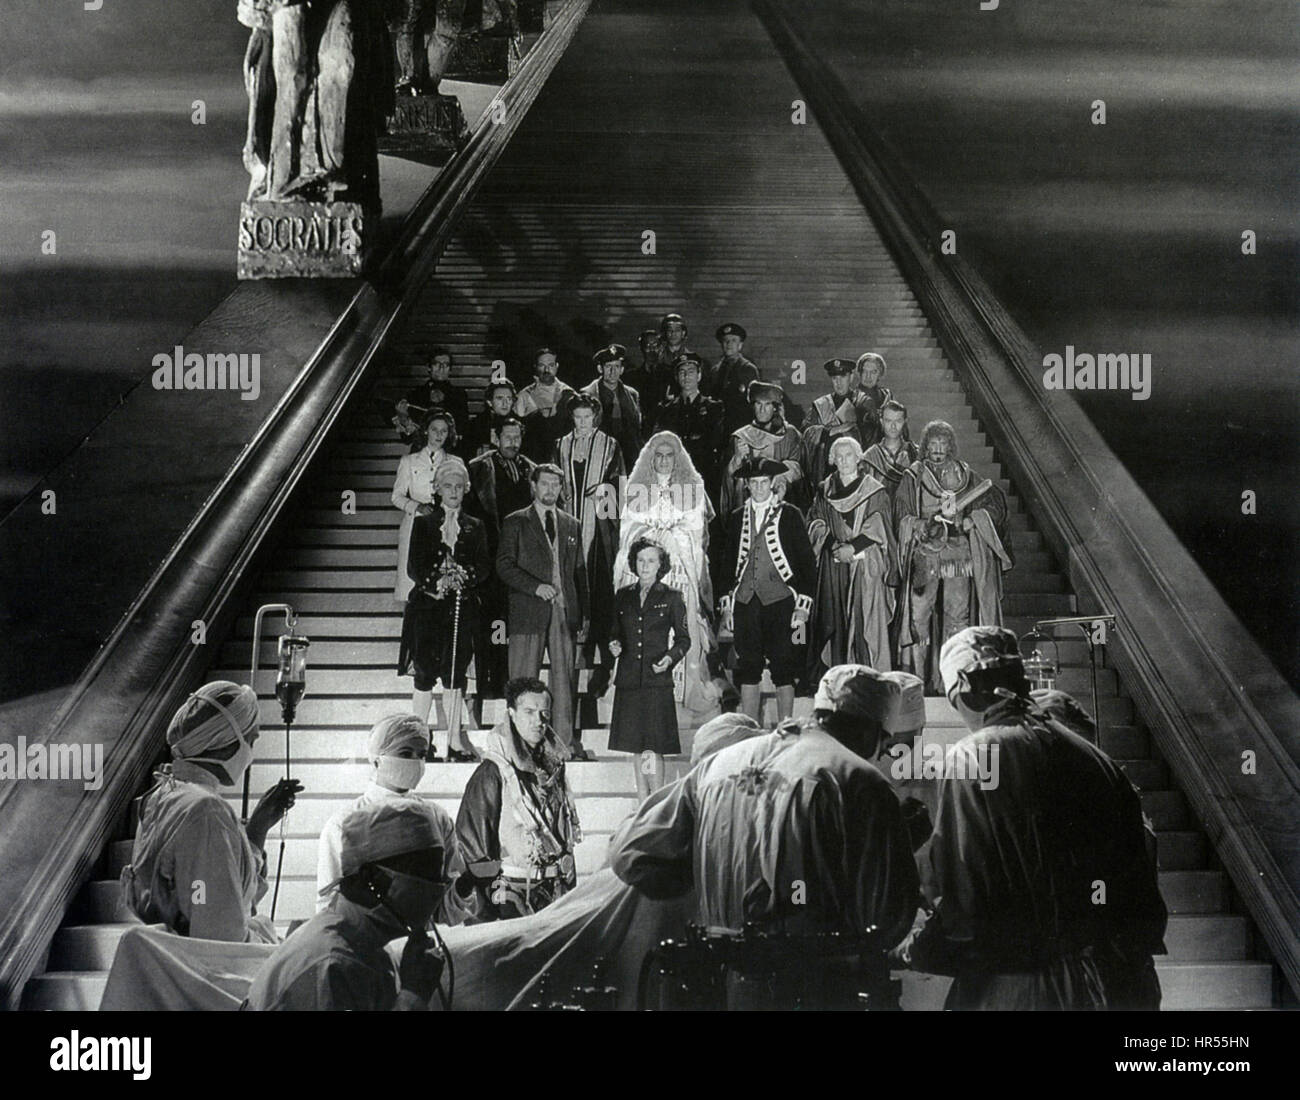 STAIRWAY TO HEAVEN  (aka A MATTER OF LIFE AND DEATH) 1946  J. Arthur Rank film with David Niven - Stock Image